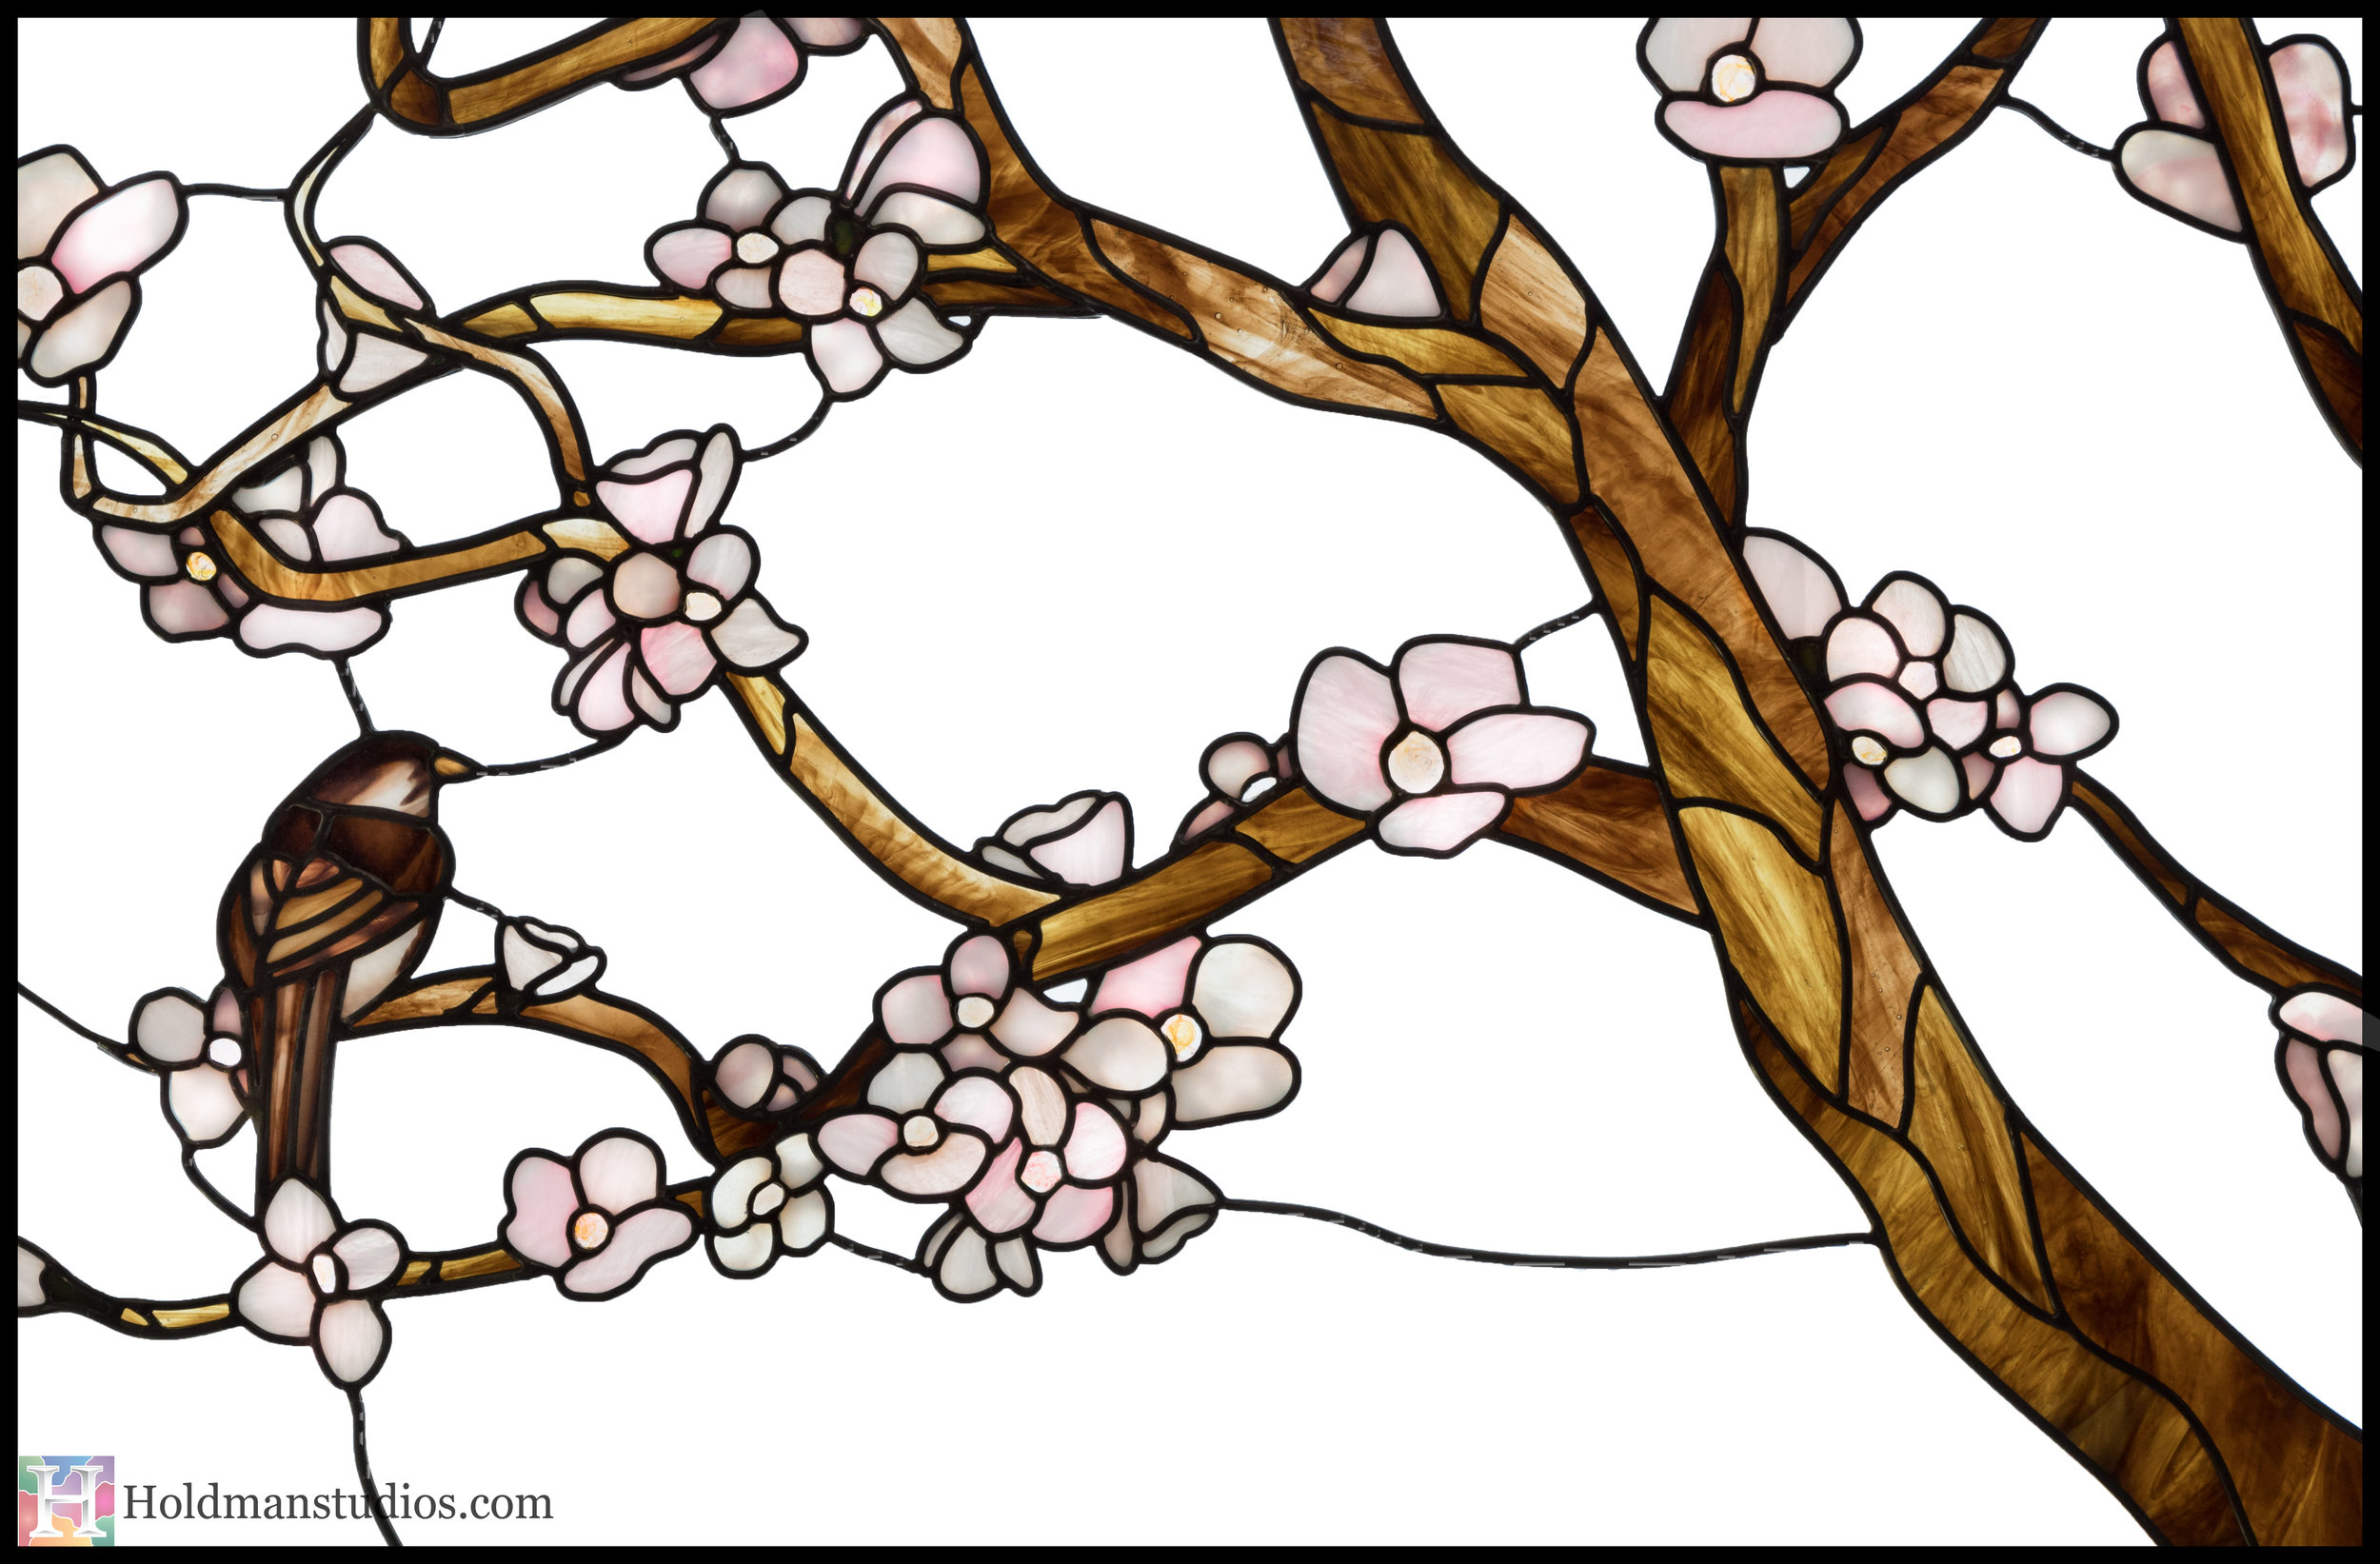 Holdman-Studios-Stained-Glass-Window-Cherry-Tree-Branches-Blossom-Flowers-Brown-Bird-Sparrow.jpg